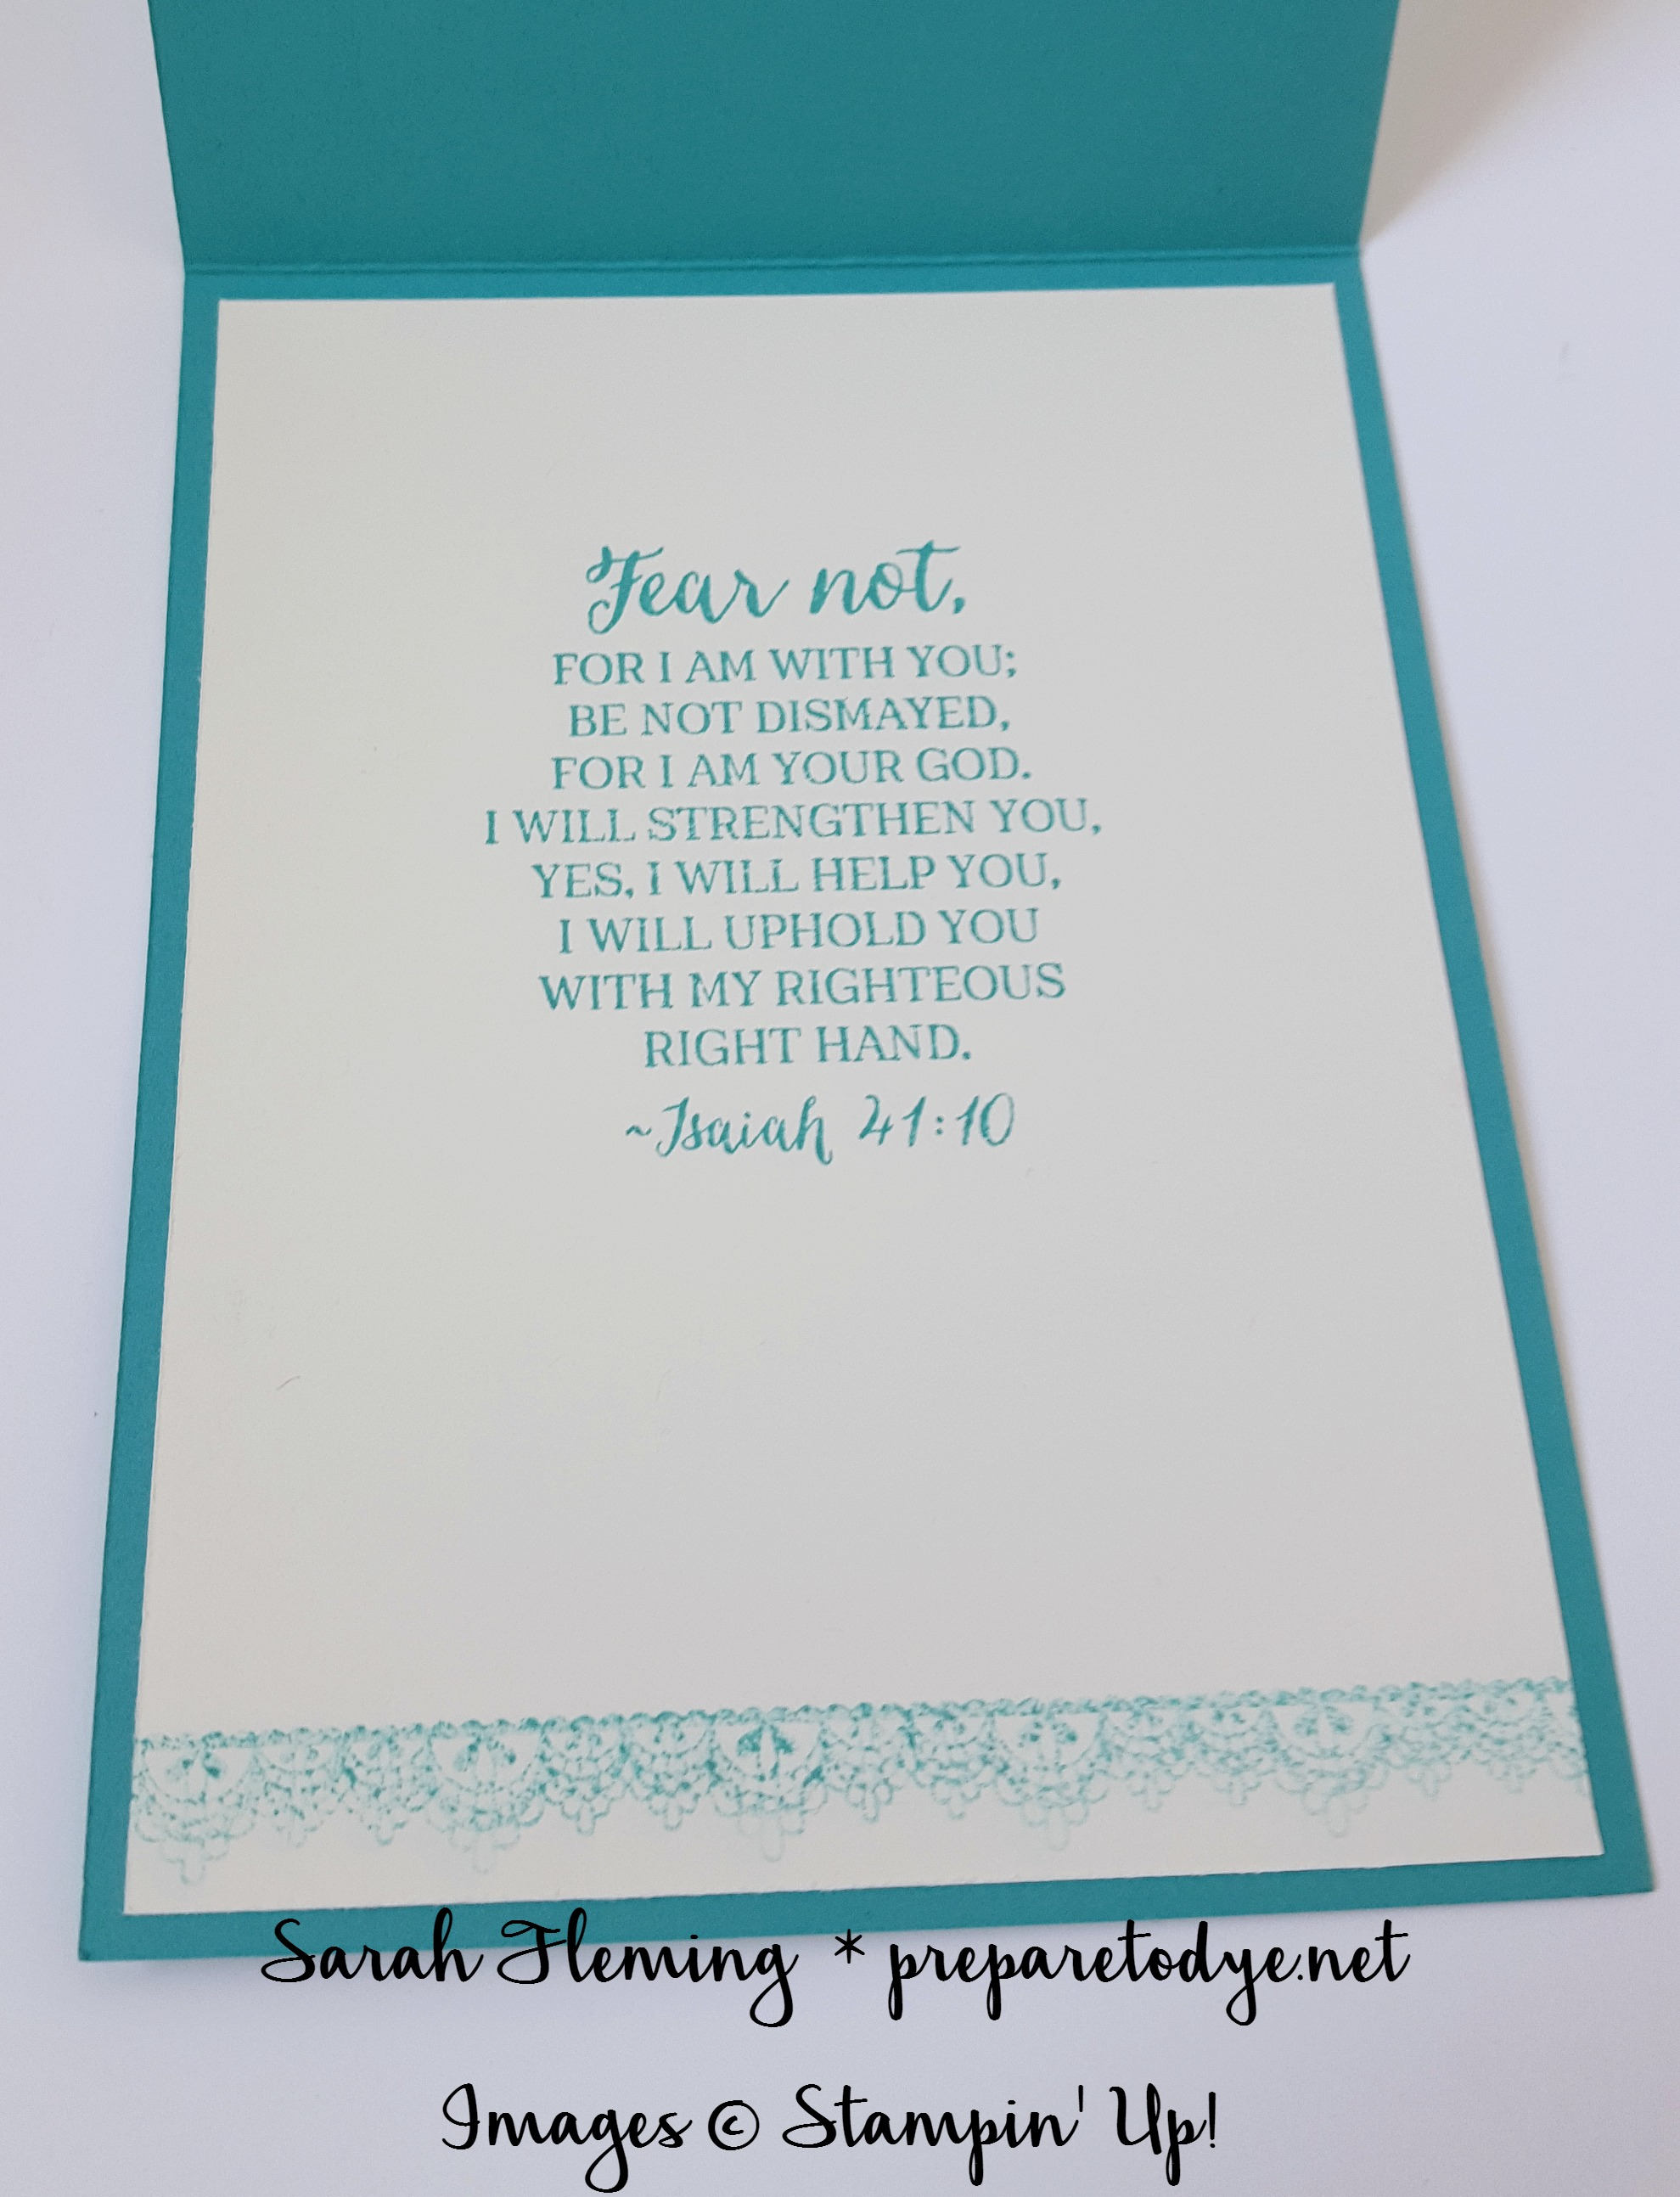 Stampin' Up!'s Rose Wonder stamp set has lovely sentiments for the inside of a handmade sympathy card - Sarah Fleming - Prepare to Dye Papercrafts